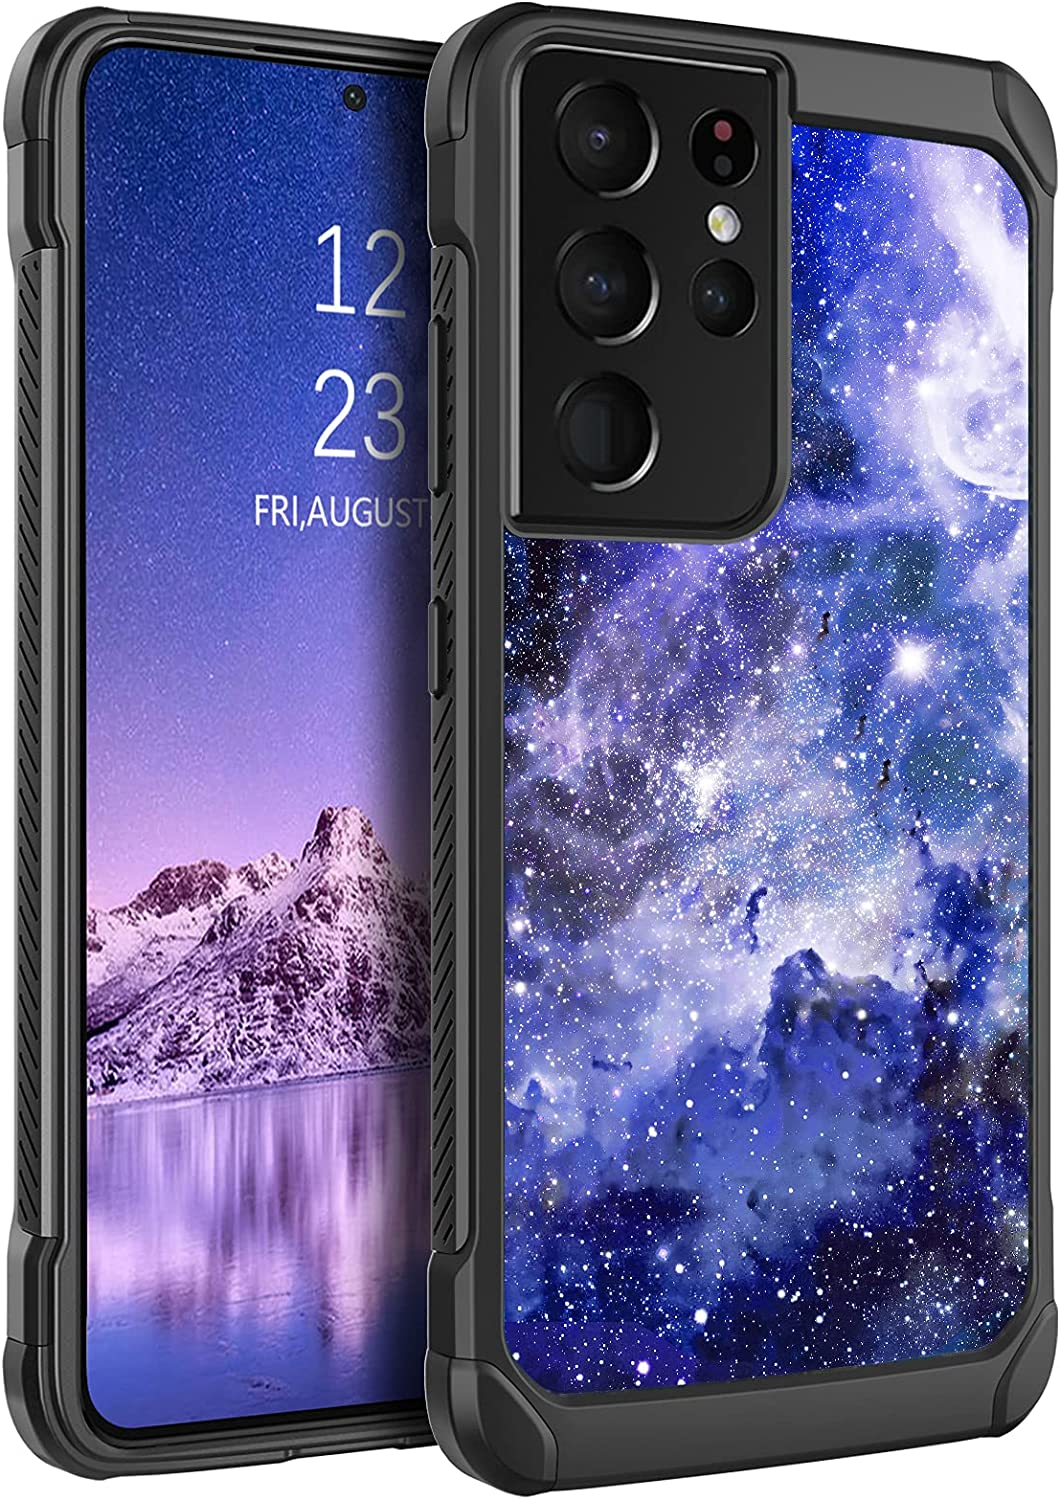 BENTOBEN Compatible with Samsung Galaxy S21 Ultra Case 6.9 Inch 2021,Slim Fit Glow in The Dark Shockproof Protective Hybrid Hard PC Soft TPU Bumper Drop Protection Girl Women Cover,Blue Nebula